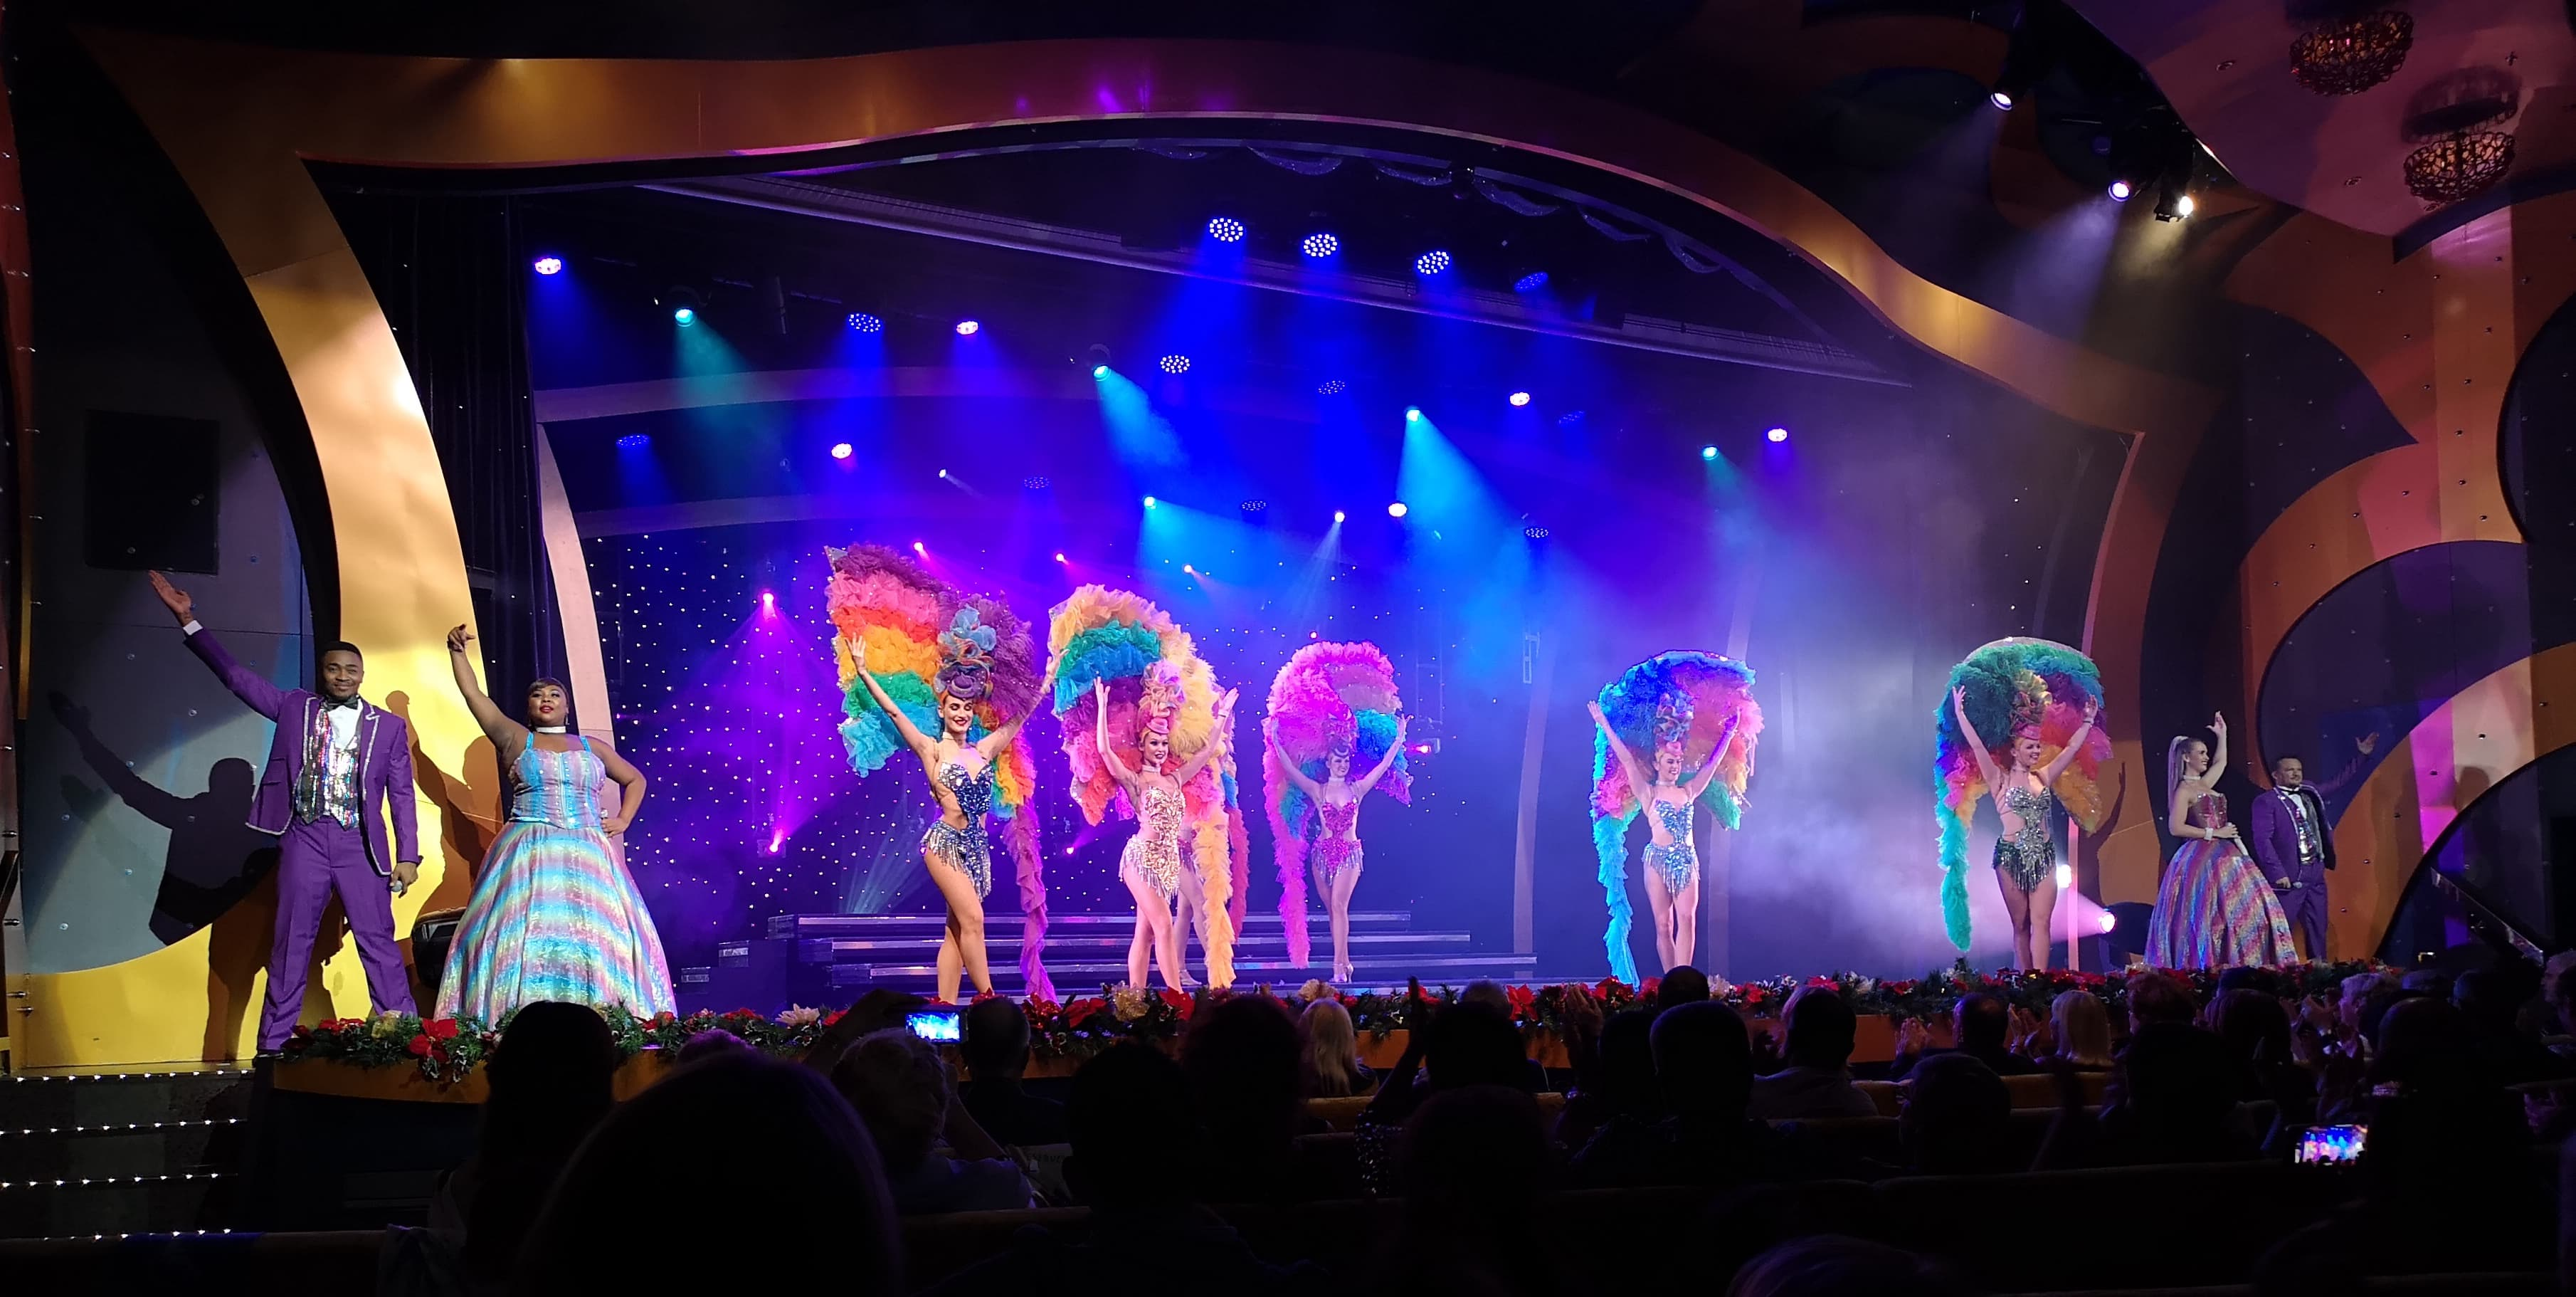 Costa Cruises Entertainment Carnival Show